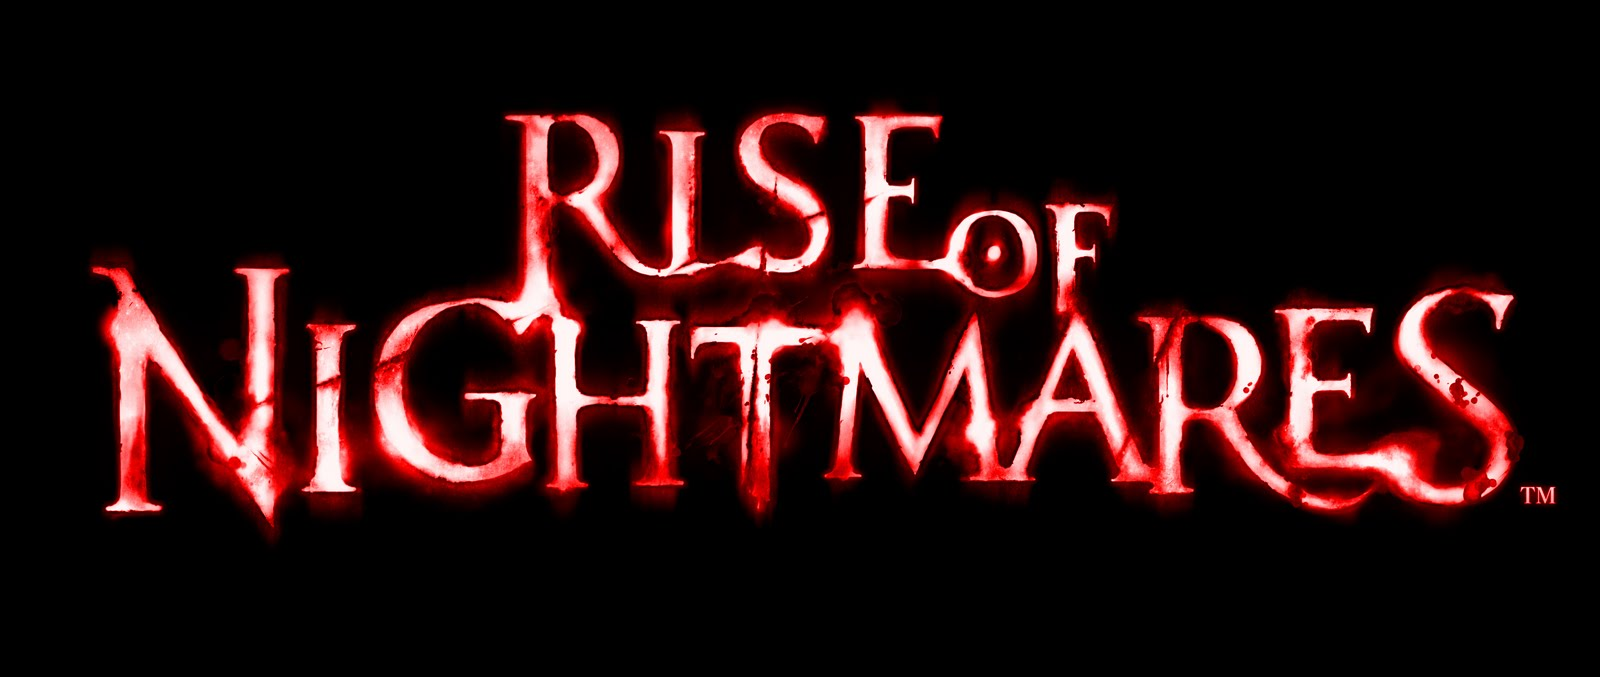 c0679342aff Rise of Nightmare Horror Game HD Wallpaper Dvd Cover